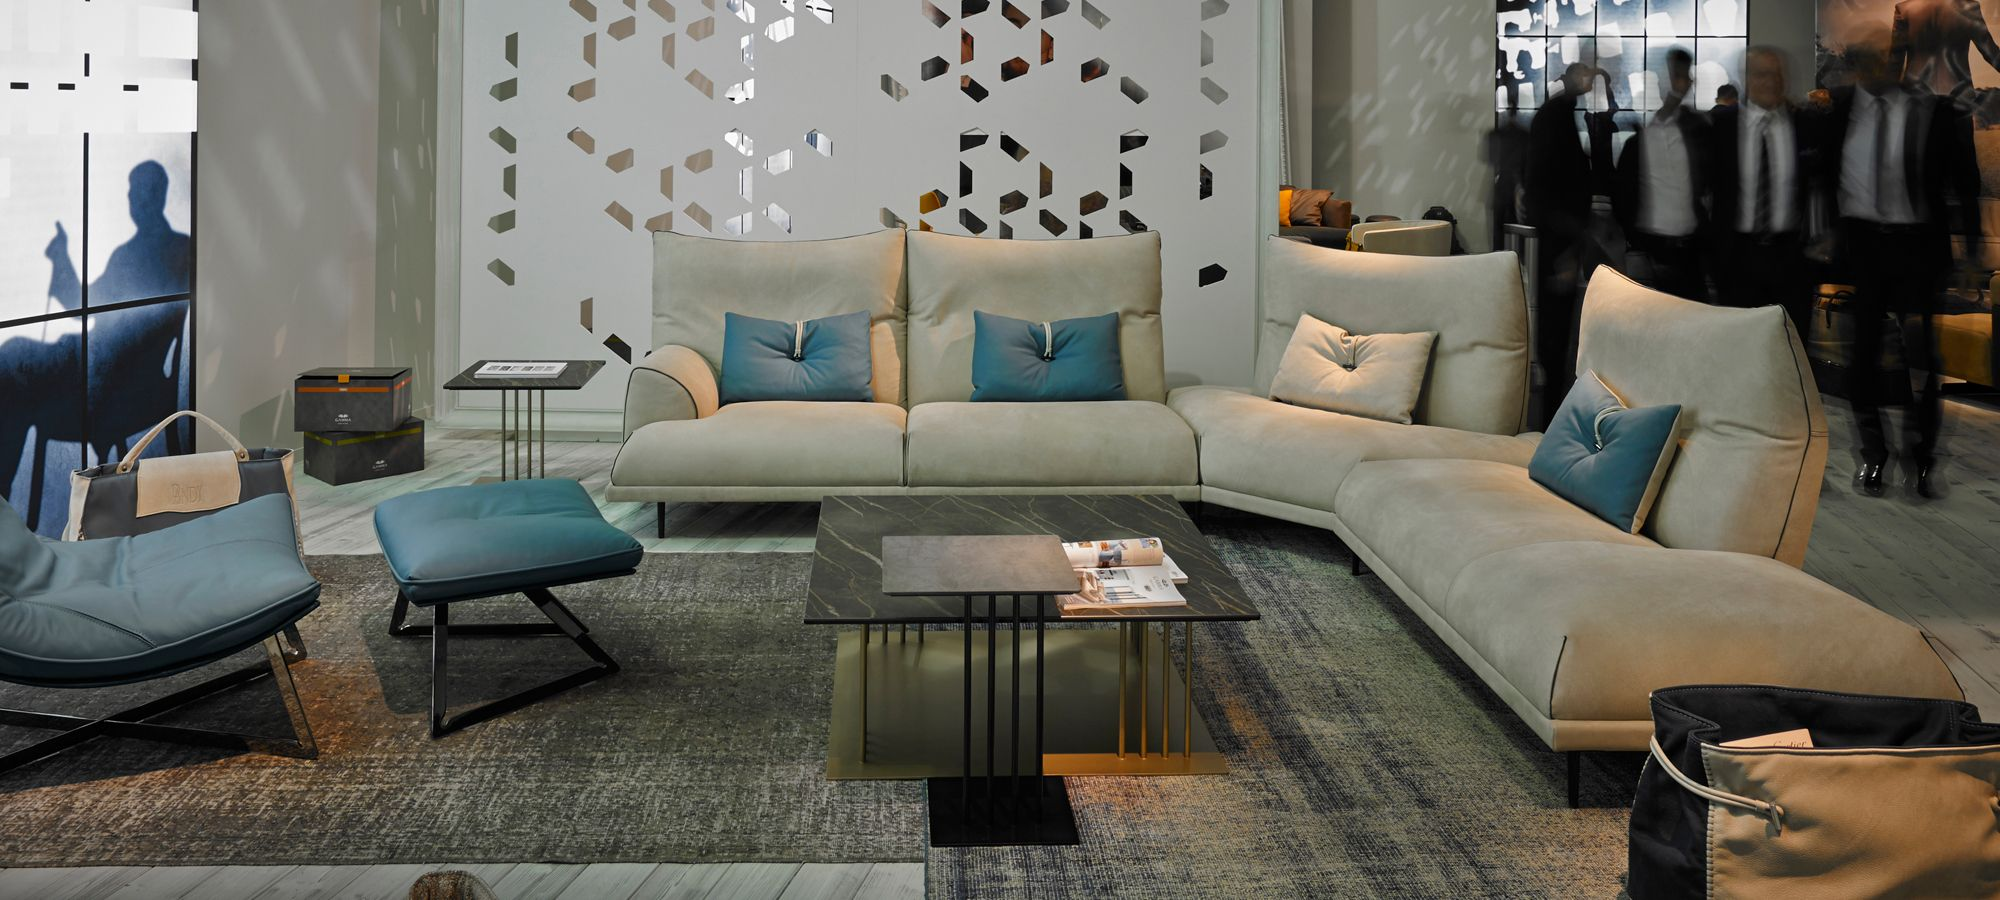 gamma sofas how to remove ball pen ink from leather sofa wolf and sectional 39s by casarredo pinterest